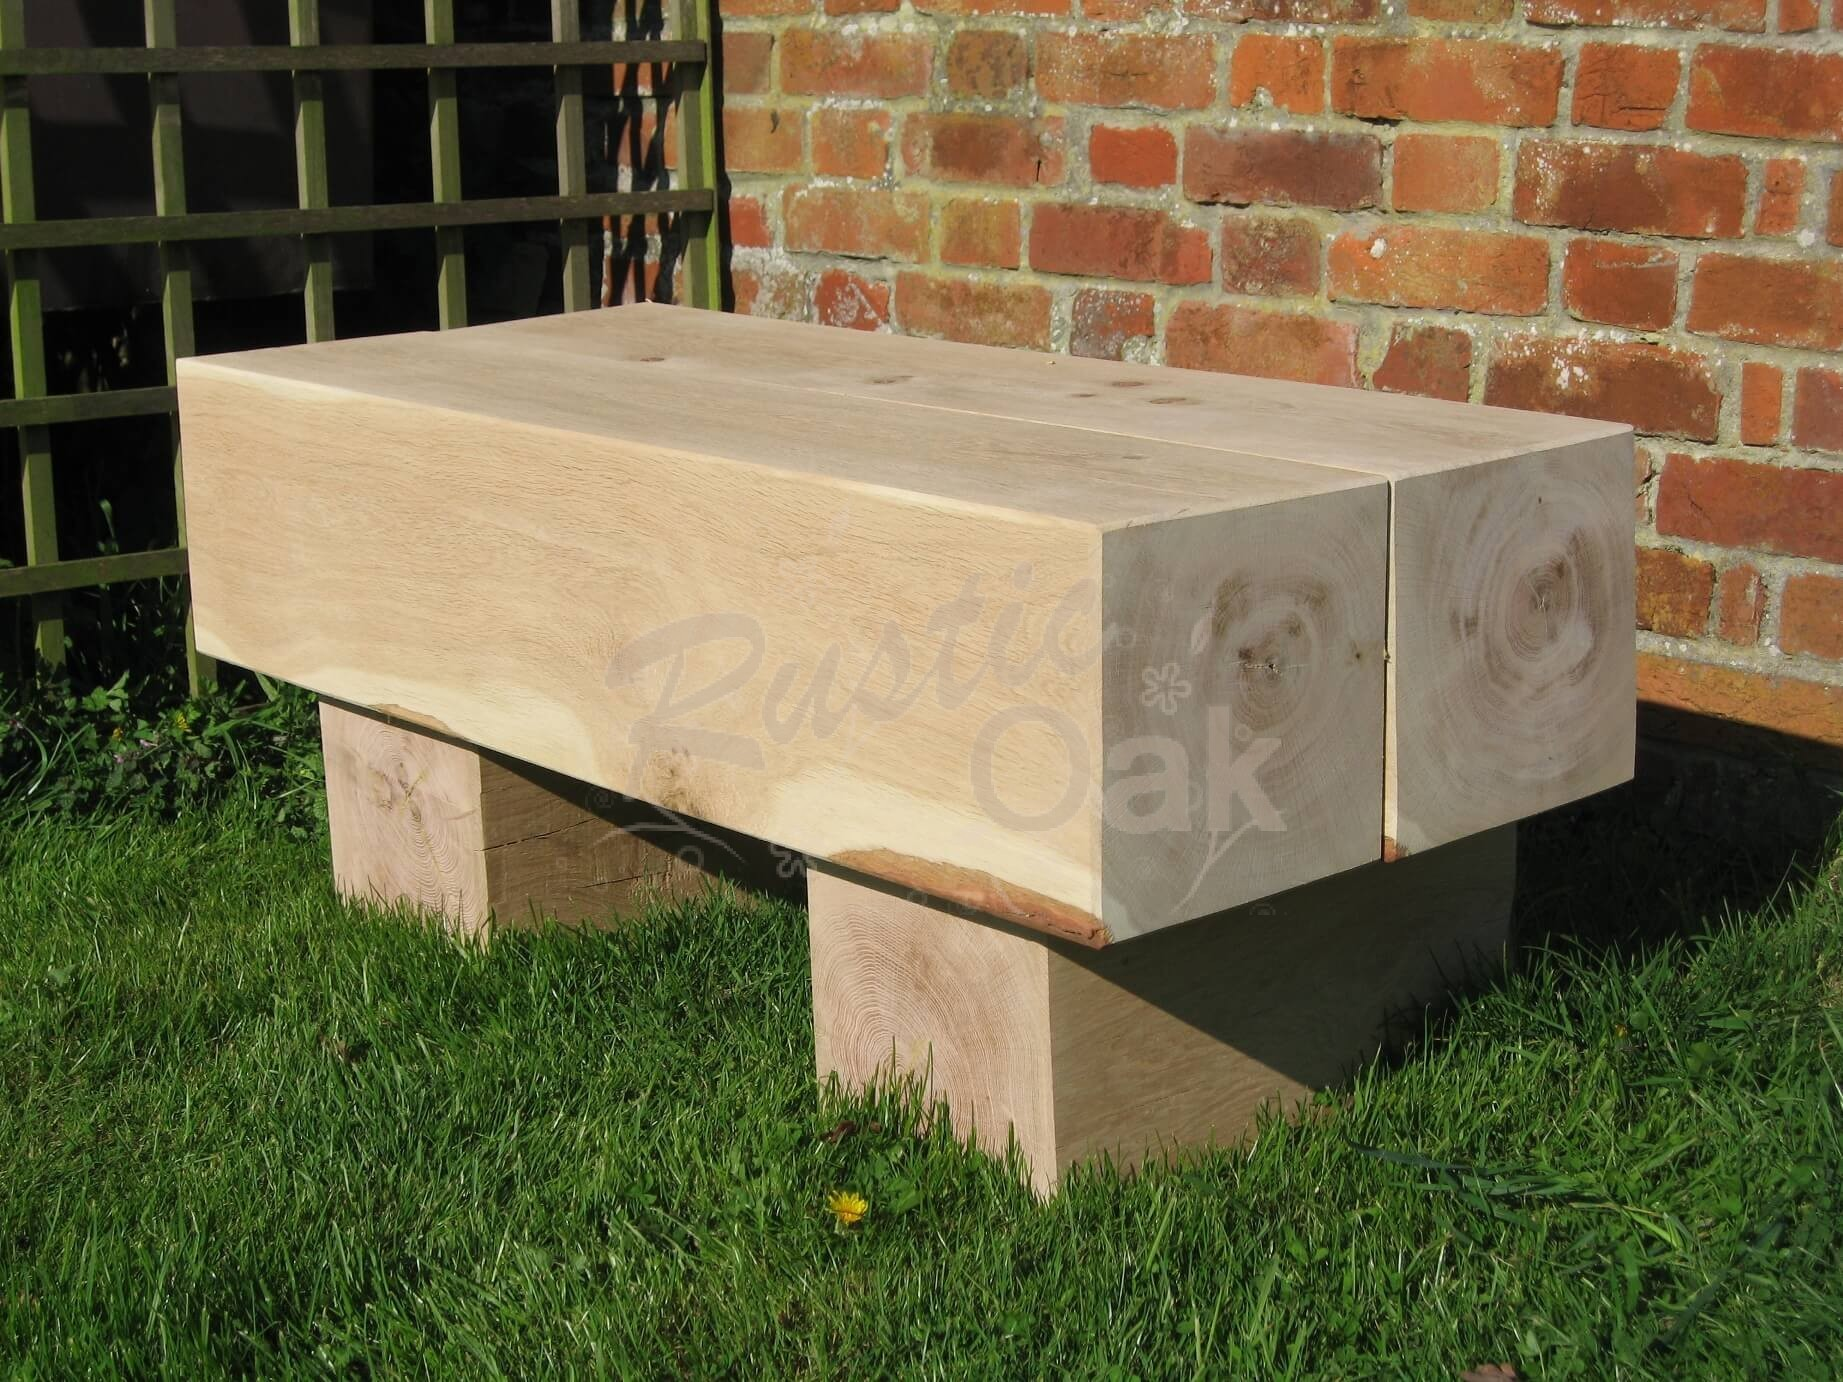 Chunky Garden Table Rustic Oak : BH9 chunky garden table from www.rusticoak.co.uk size 1843 x 1382 jpeg 451kB